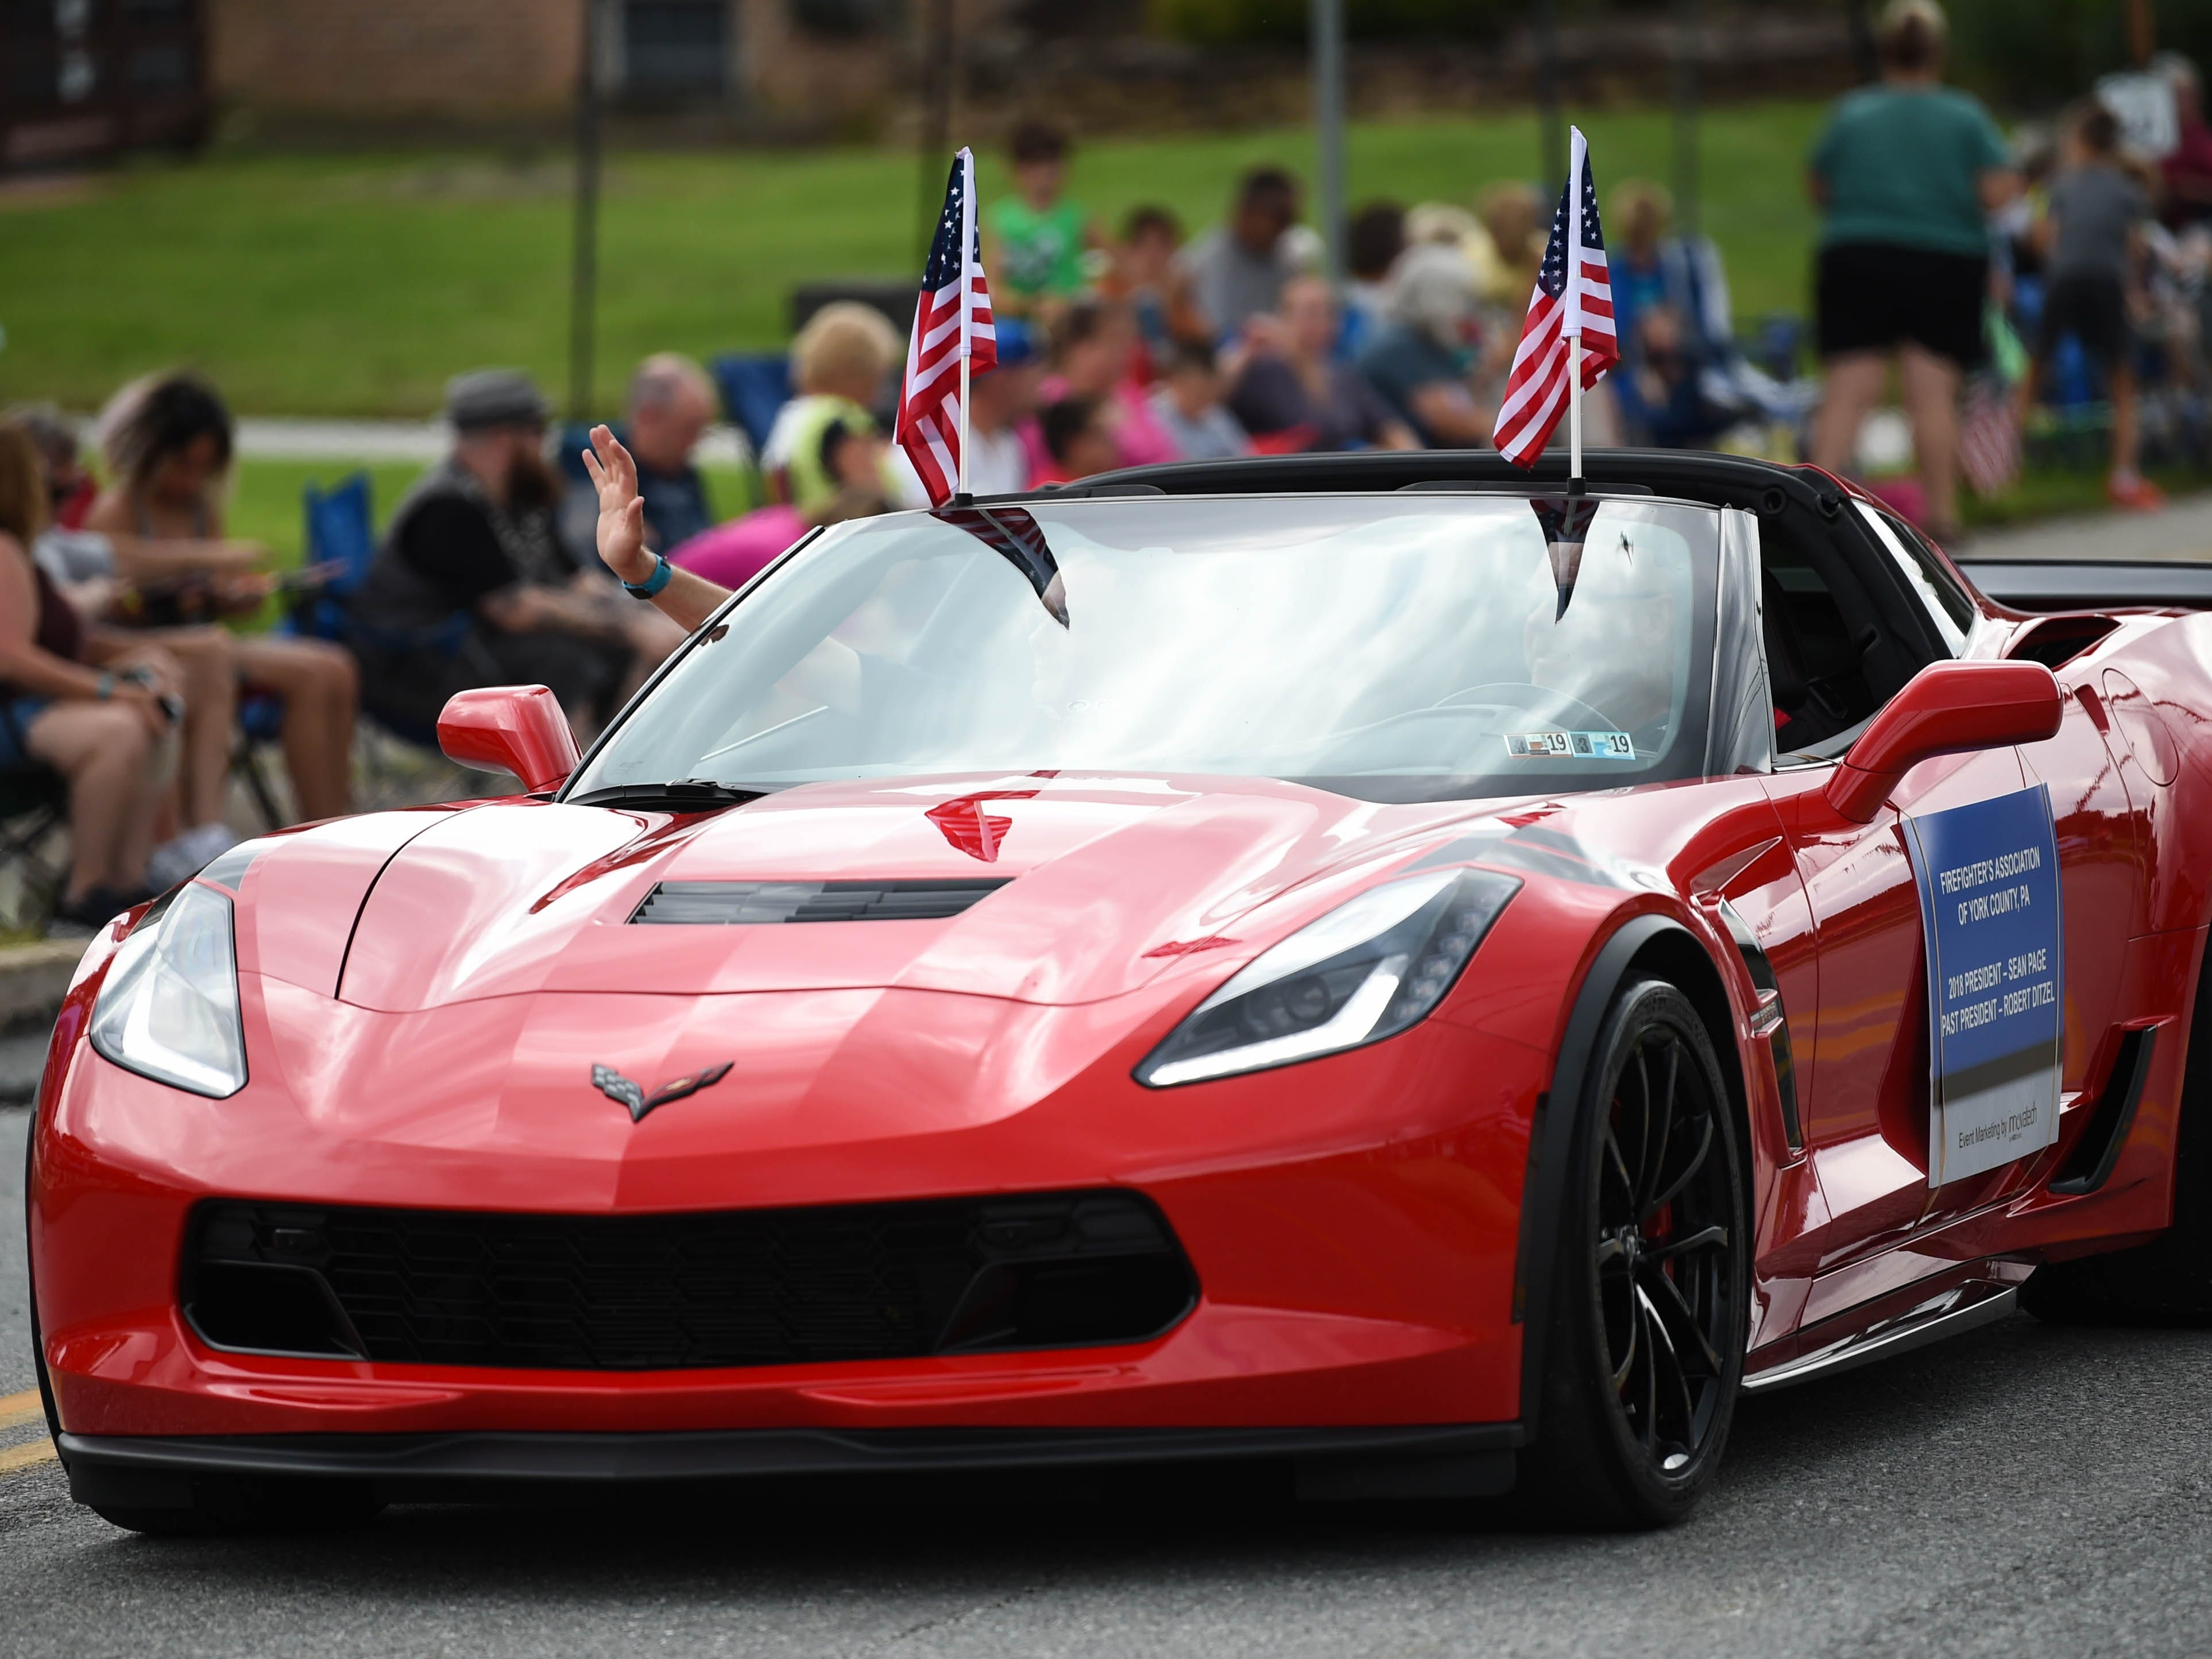 A Corvette passenger greets onlookers during the York County Firemen's Parade, celebrating Alert Fire Company's 100th year, Saturday, August 18, 2018.